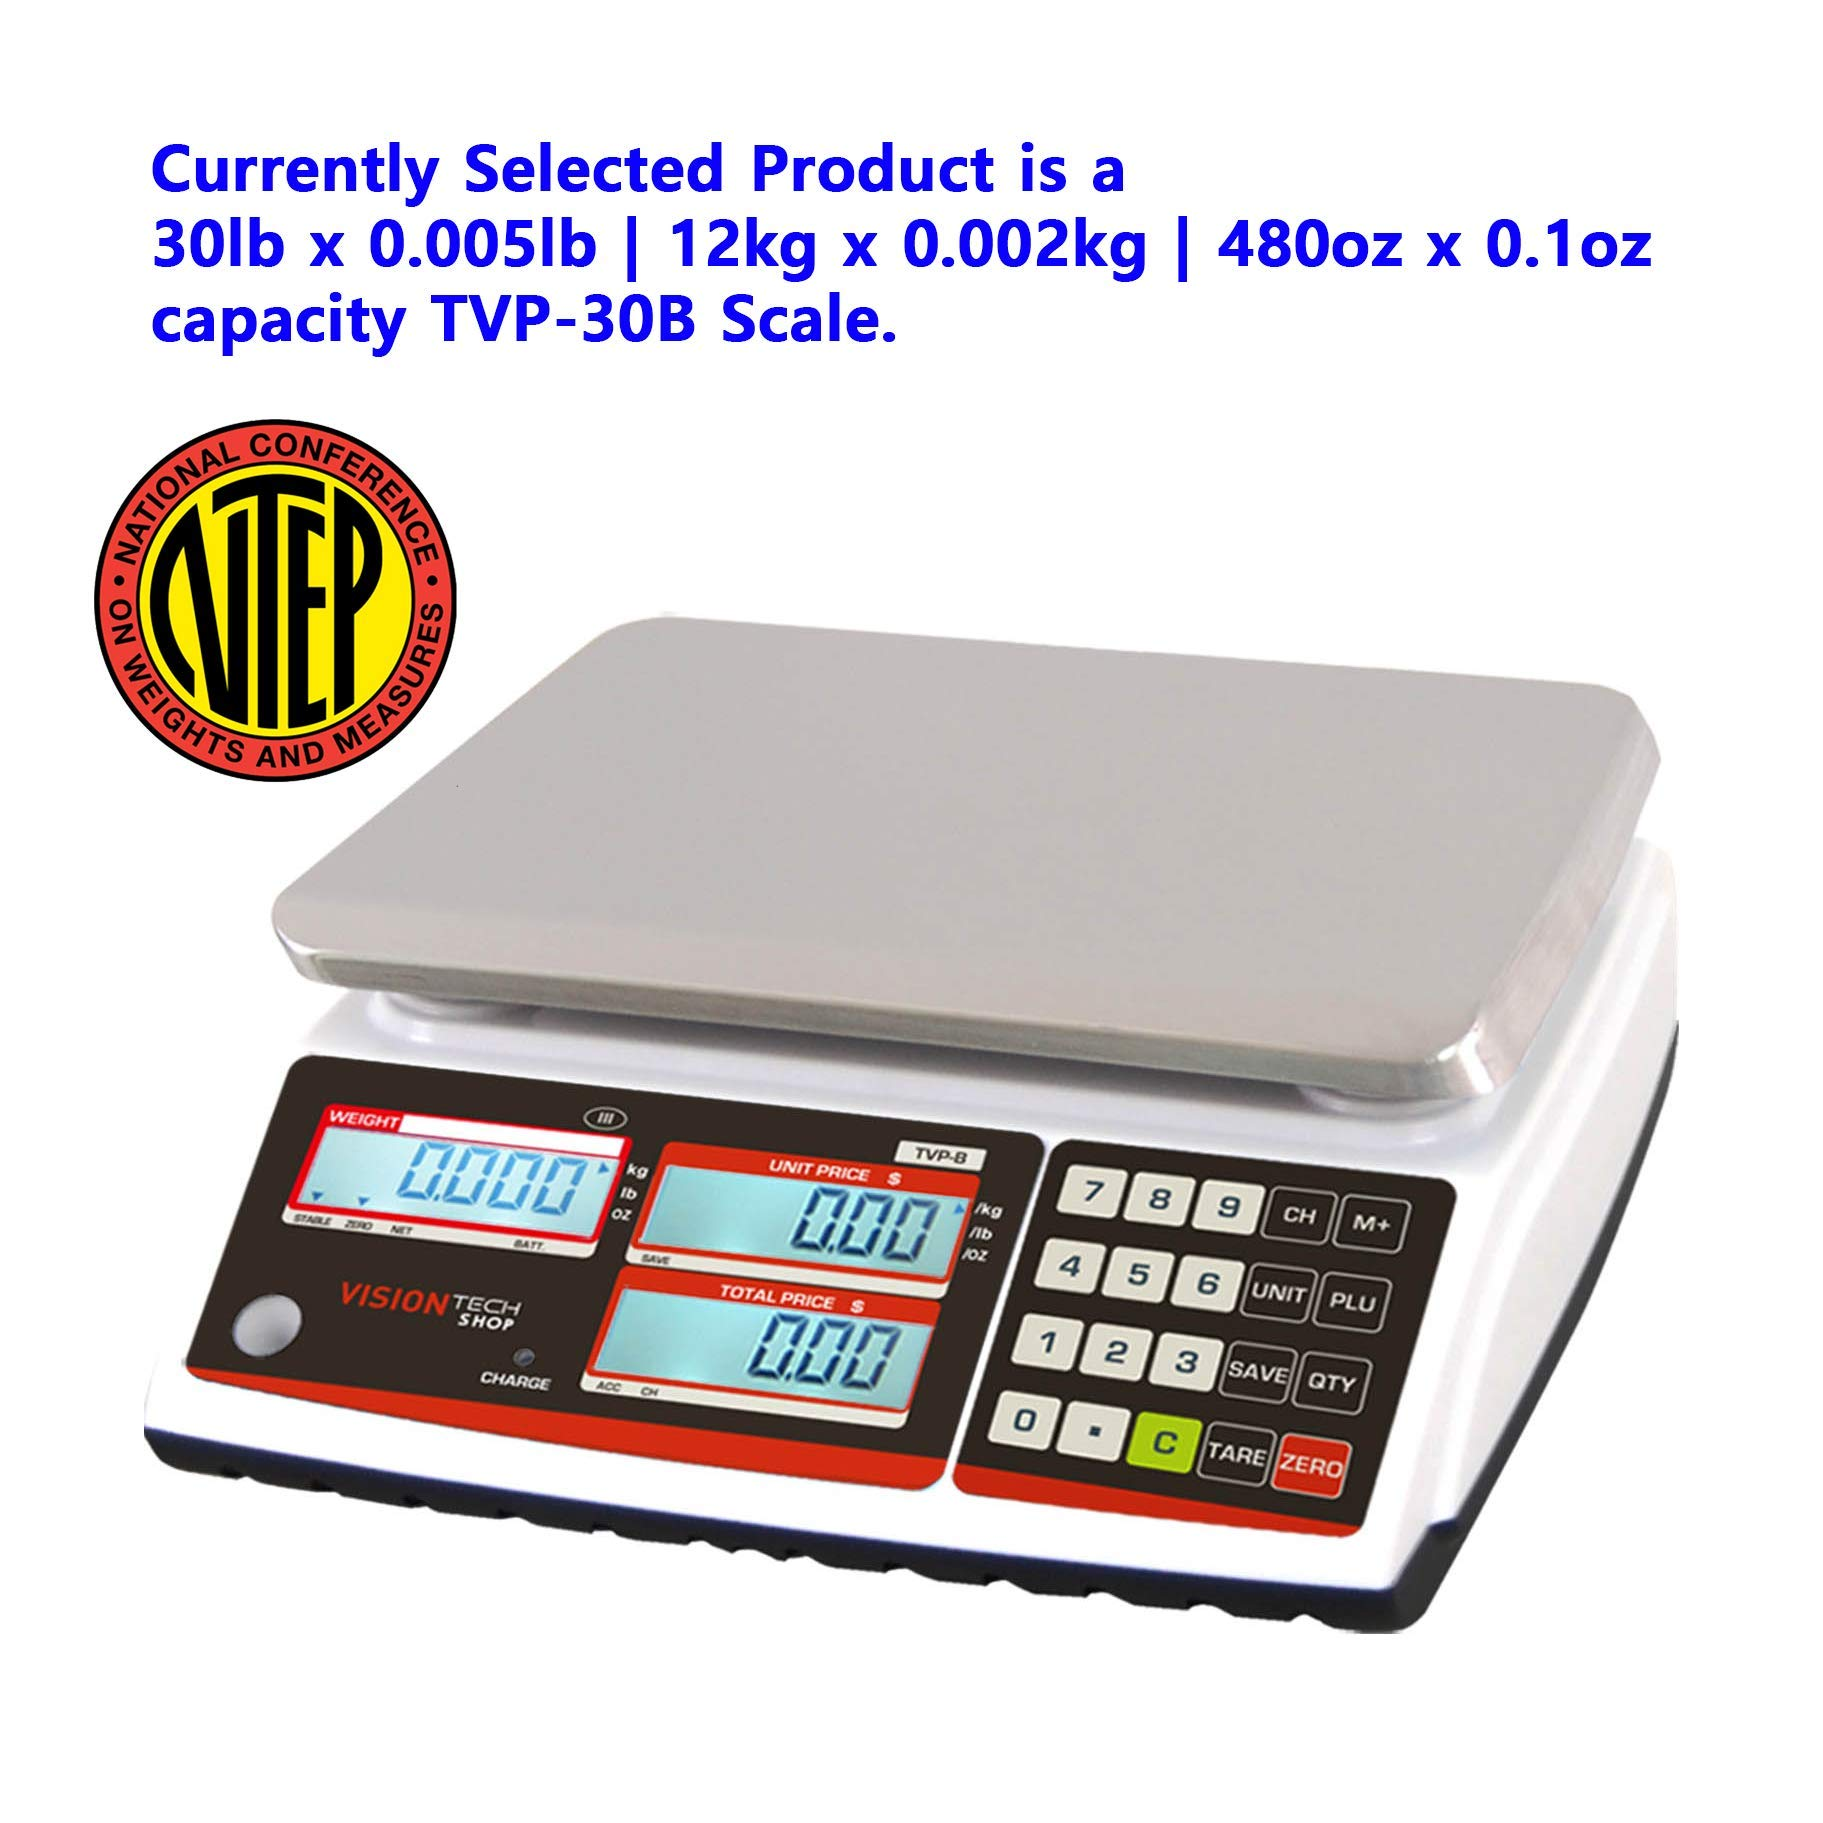 VisionTechShop TVP-30B Price Computing Scale, Lb/Oz/Kg Switchable, 30lb Capacity, 0.005lb Readability, NTEP Legal for Trade